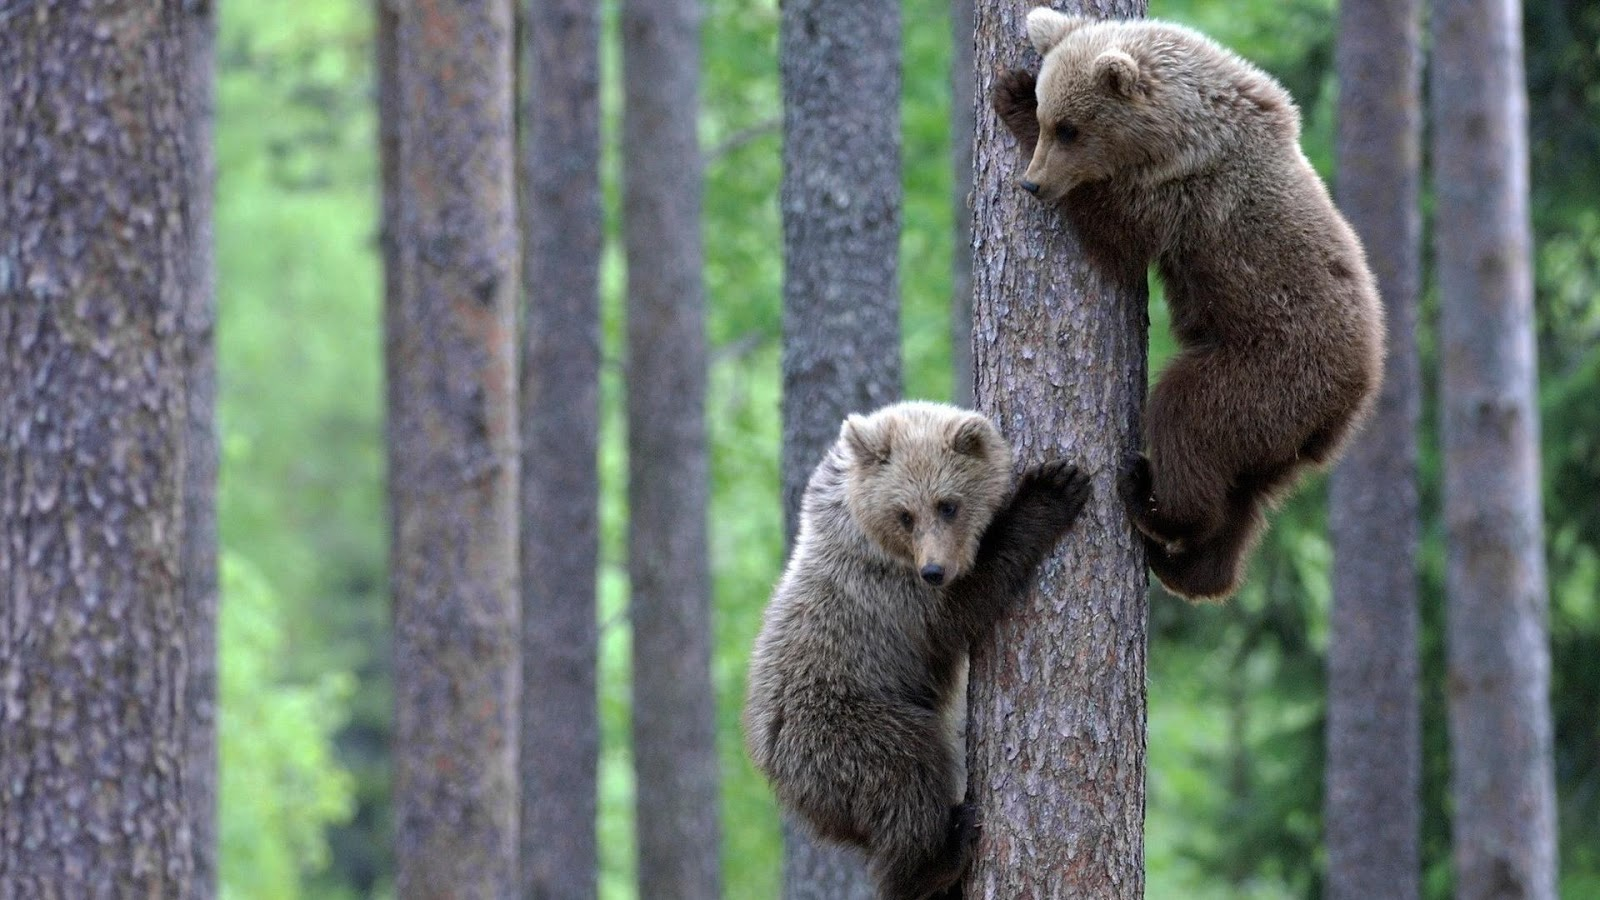 Bear Cubs Climbing Competitions